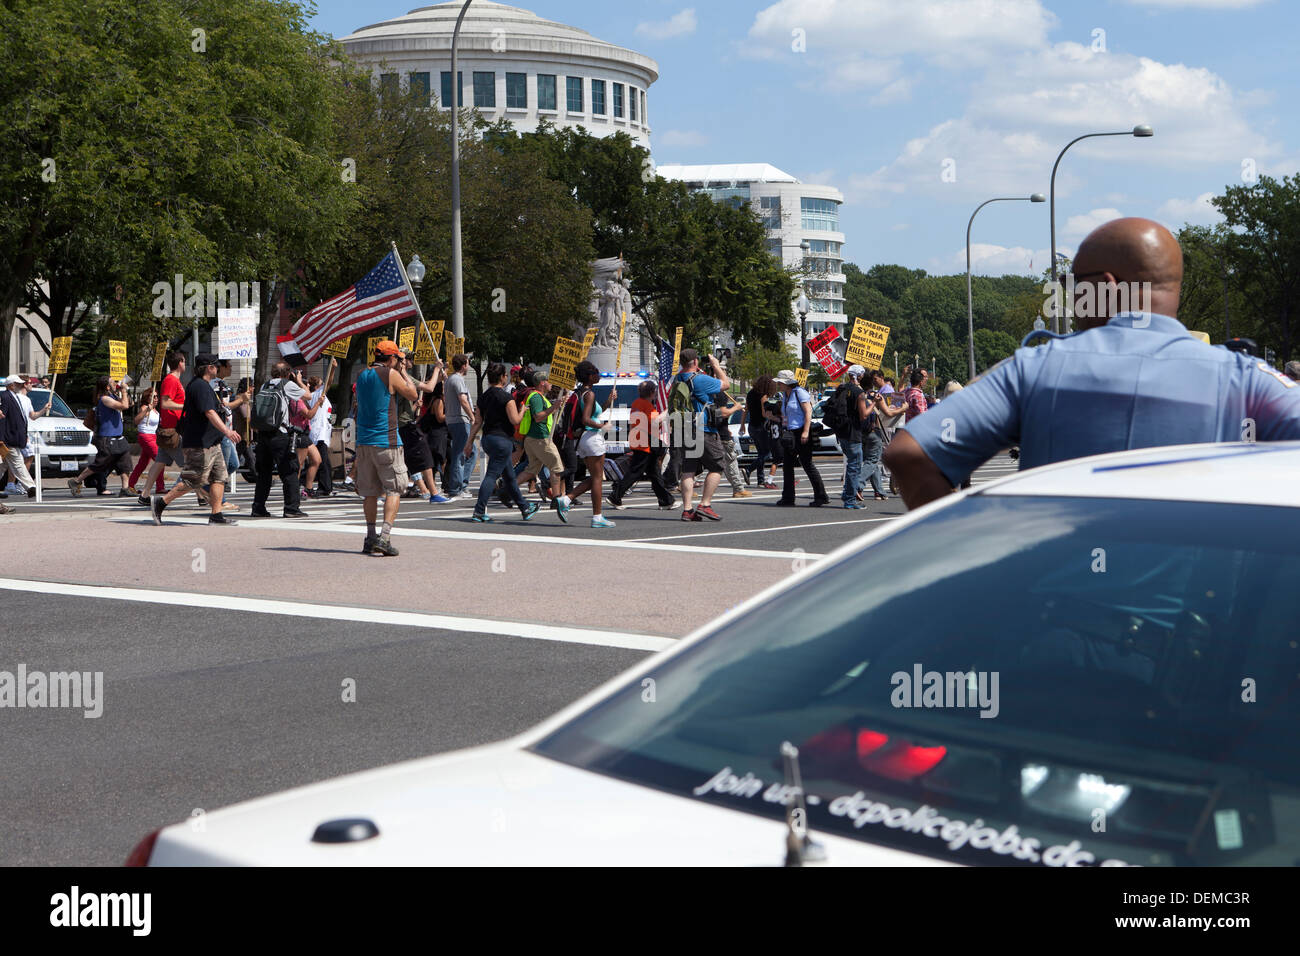 Policeman watching demonstrators - Washington, DC USA - Stock Image